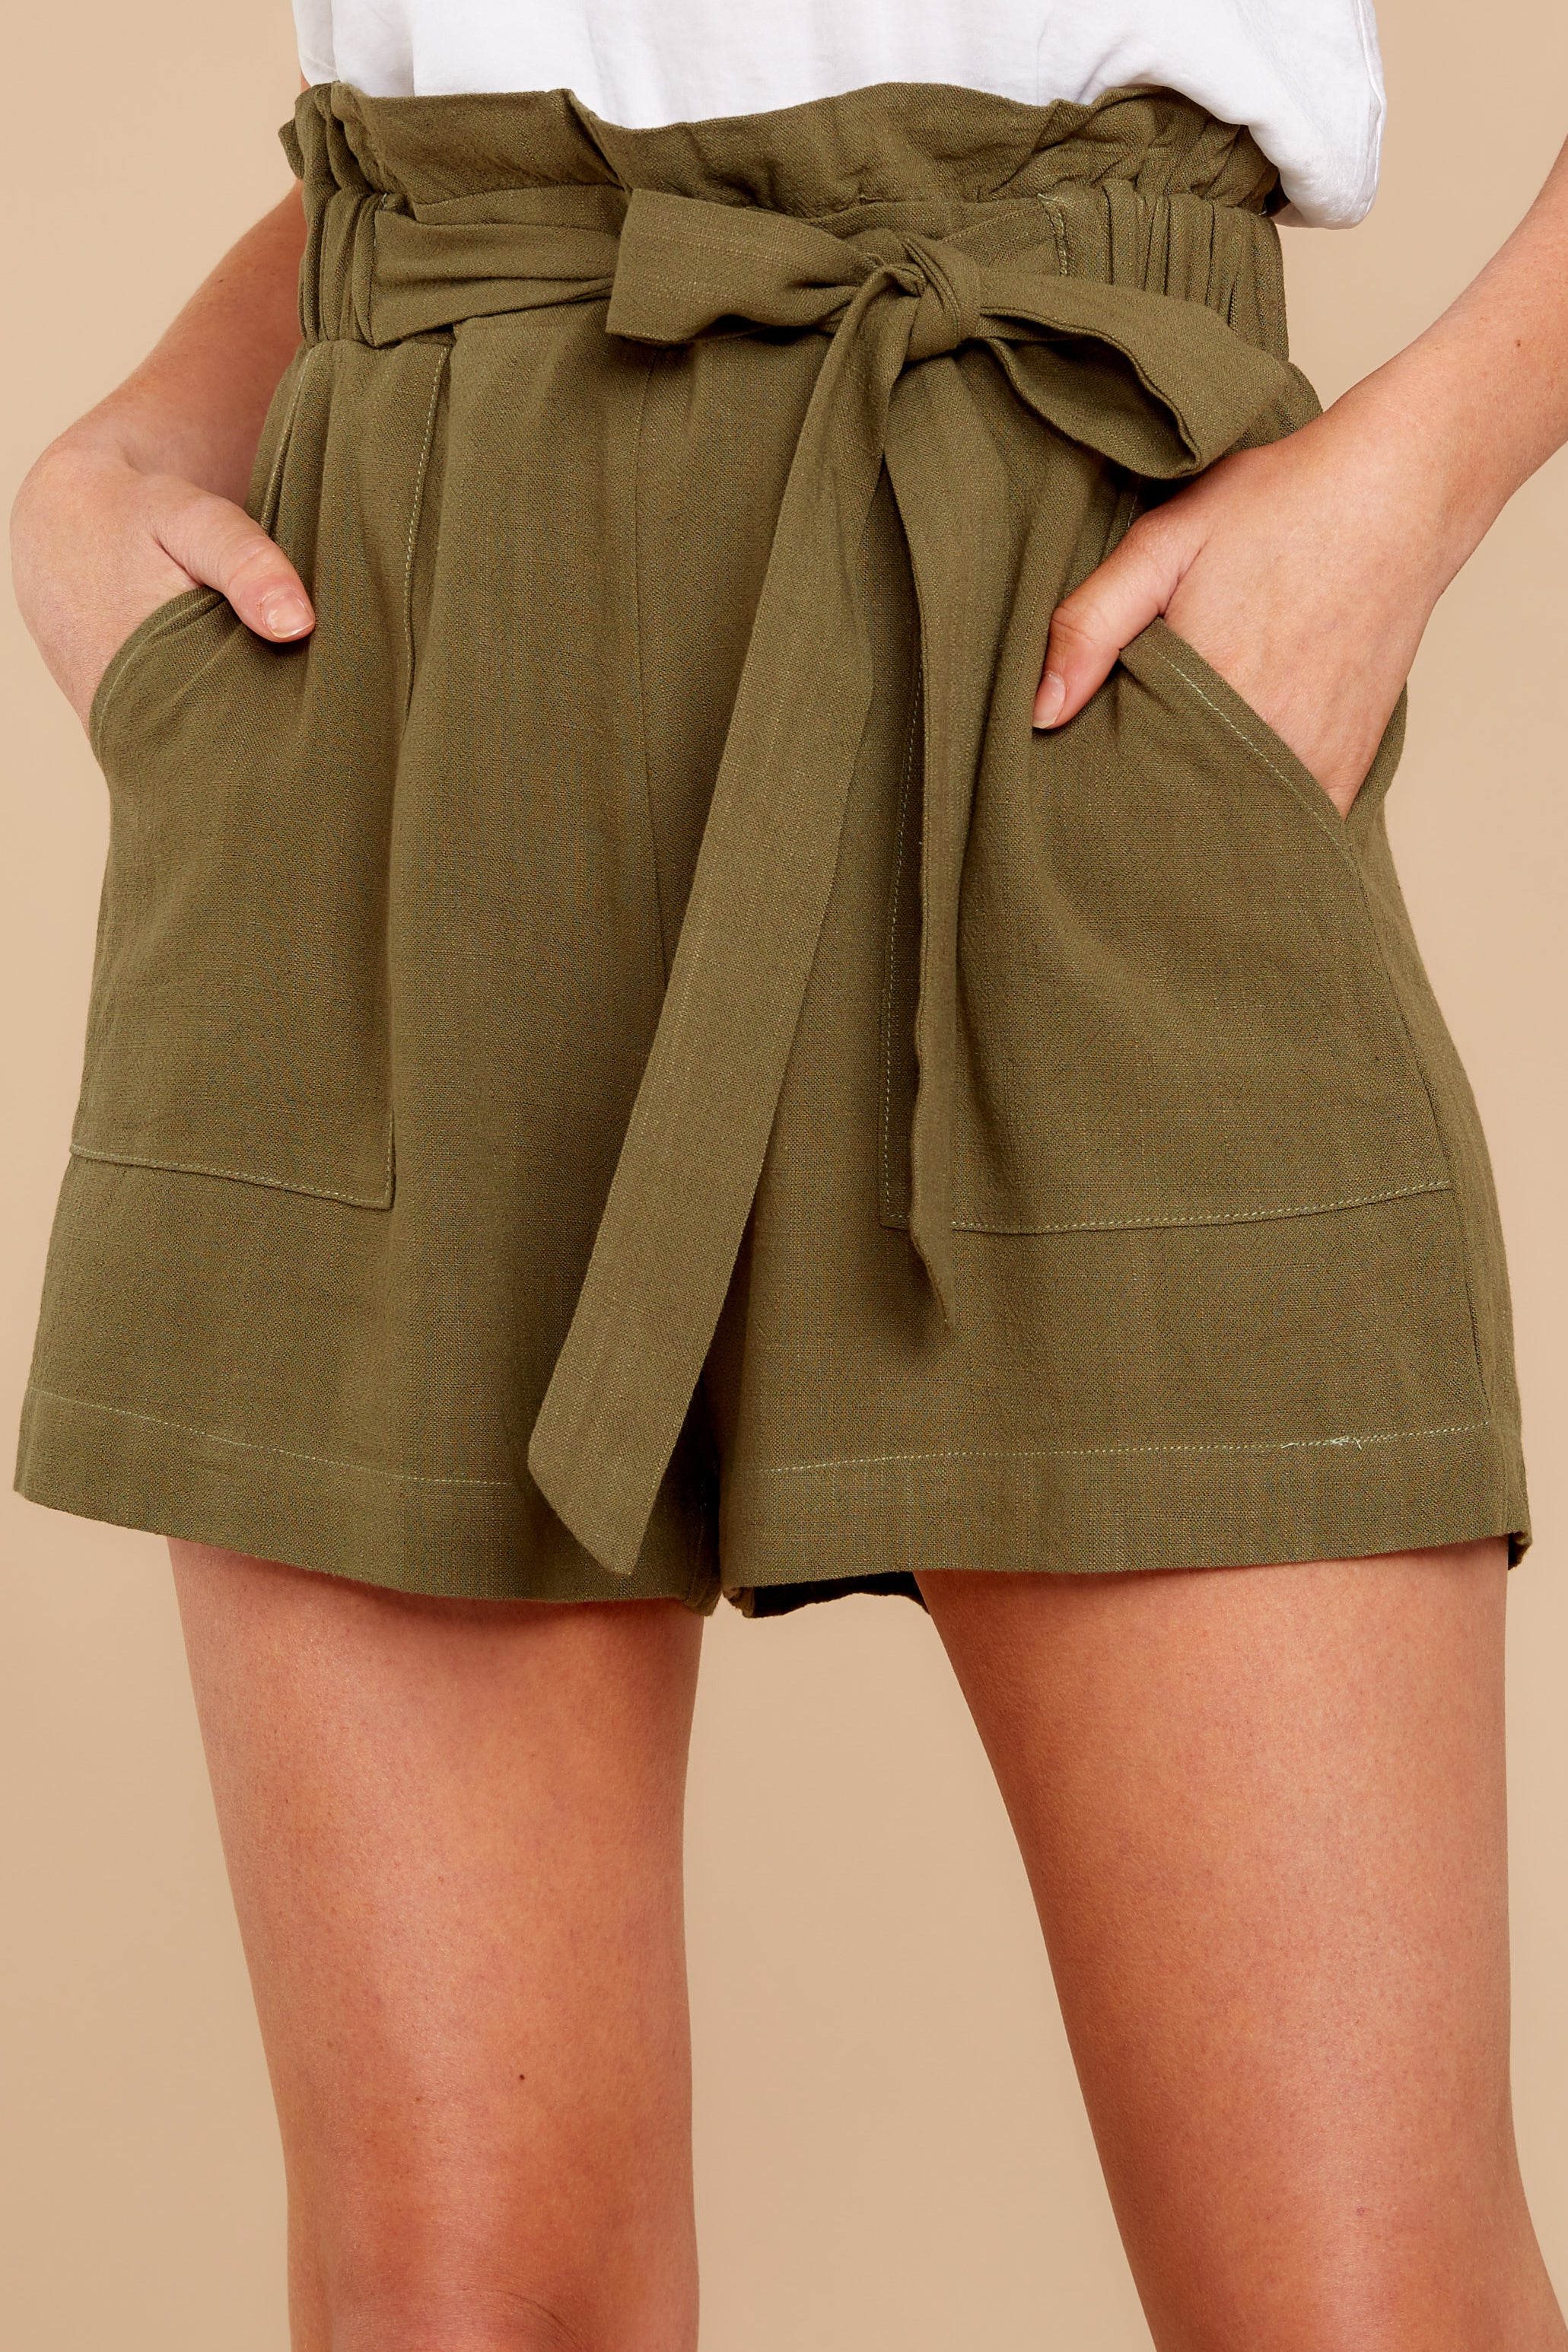 6ae3a9f87d951 Trendy Olive Green Shorts - Cute Shorts - Shorts - $38.00 – Red Dress